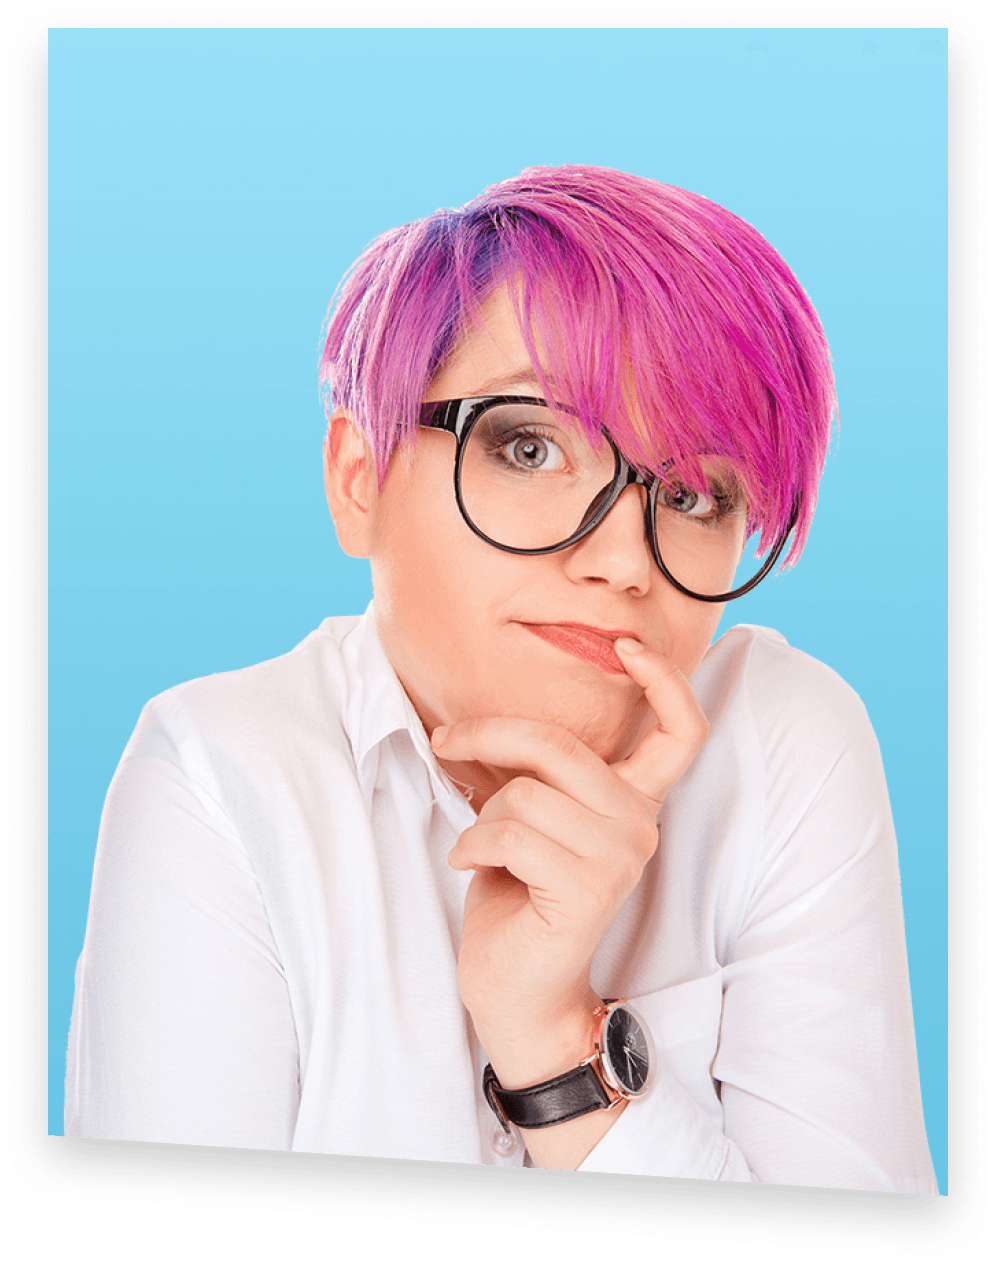 A shmoop student with magenta hair shrugging her shoulders with finger touching her confused face